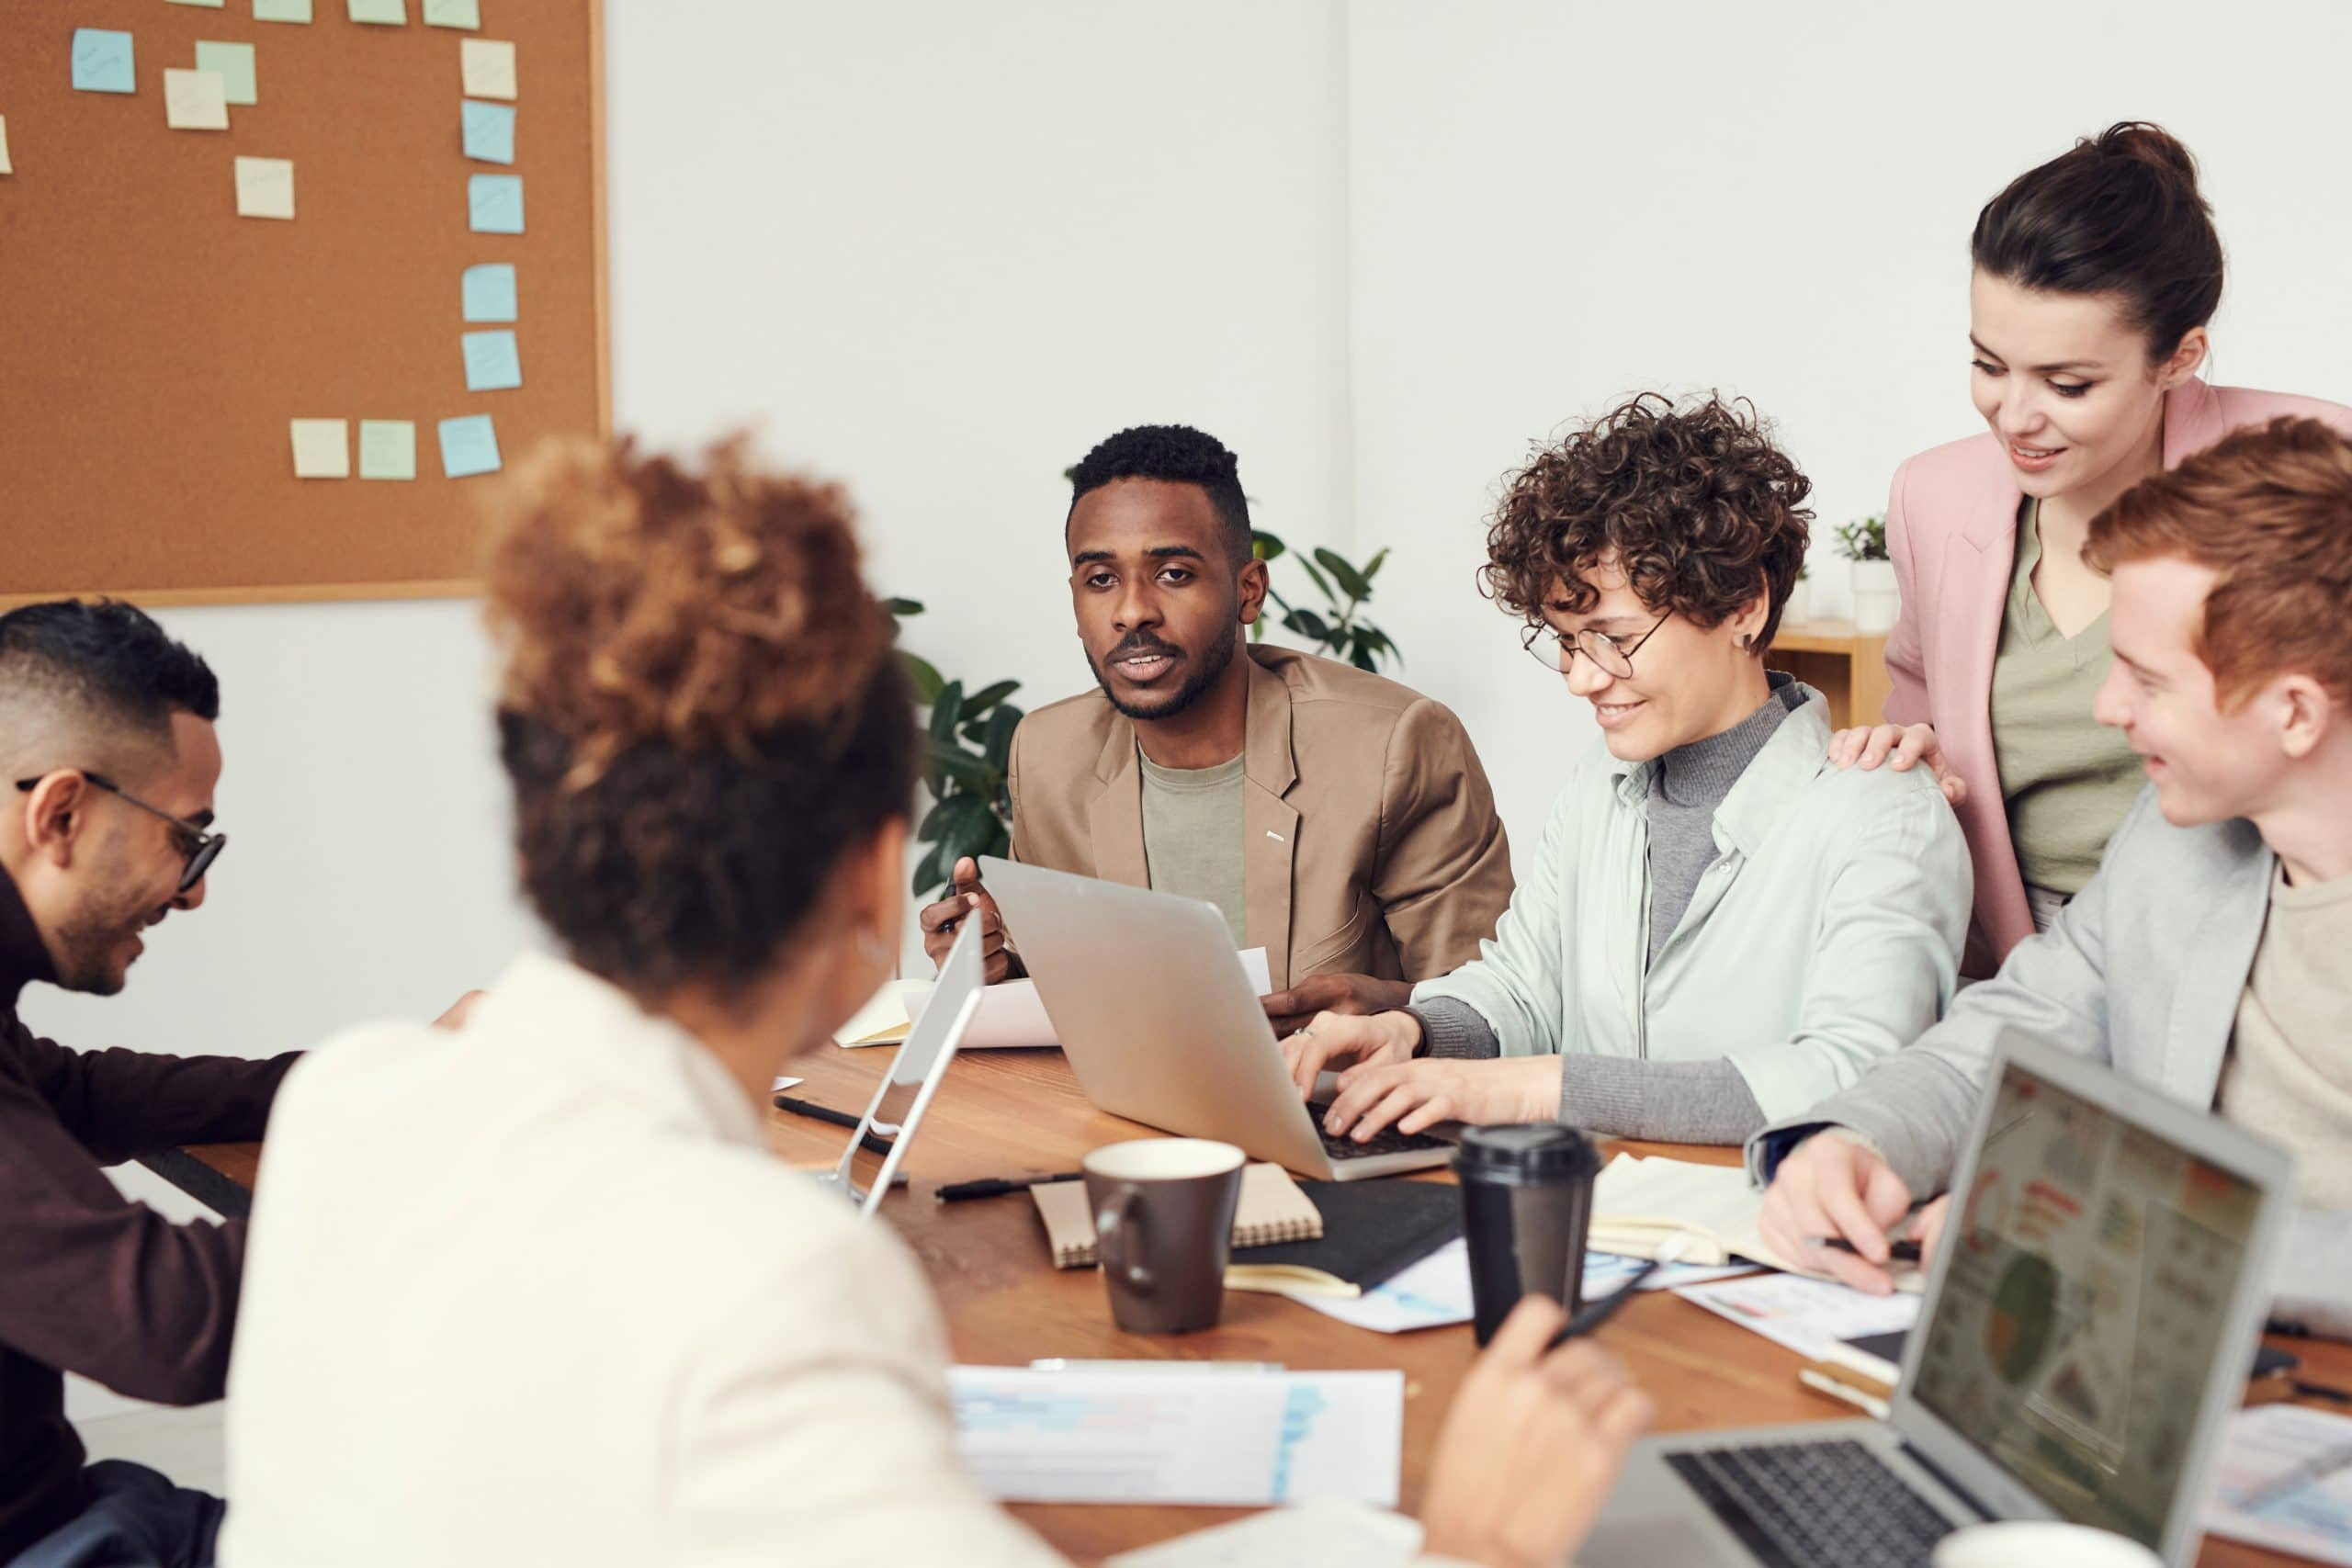 6 steps to preventing workplace grievances